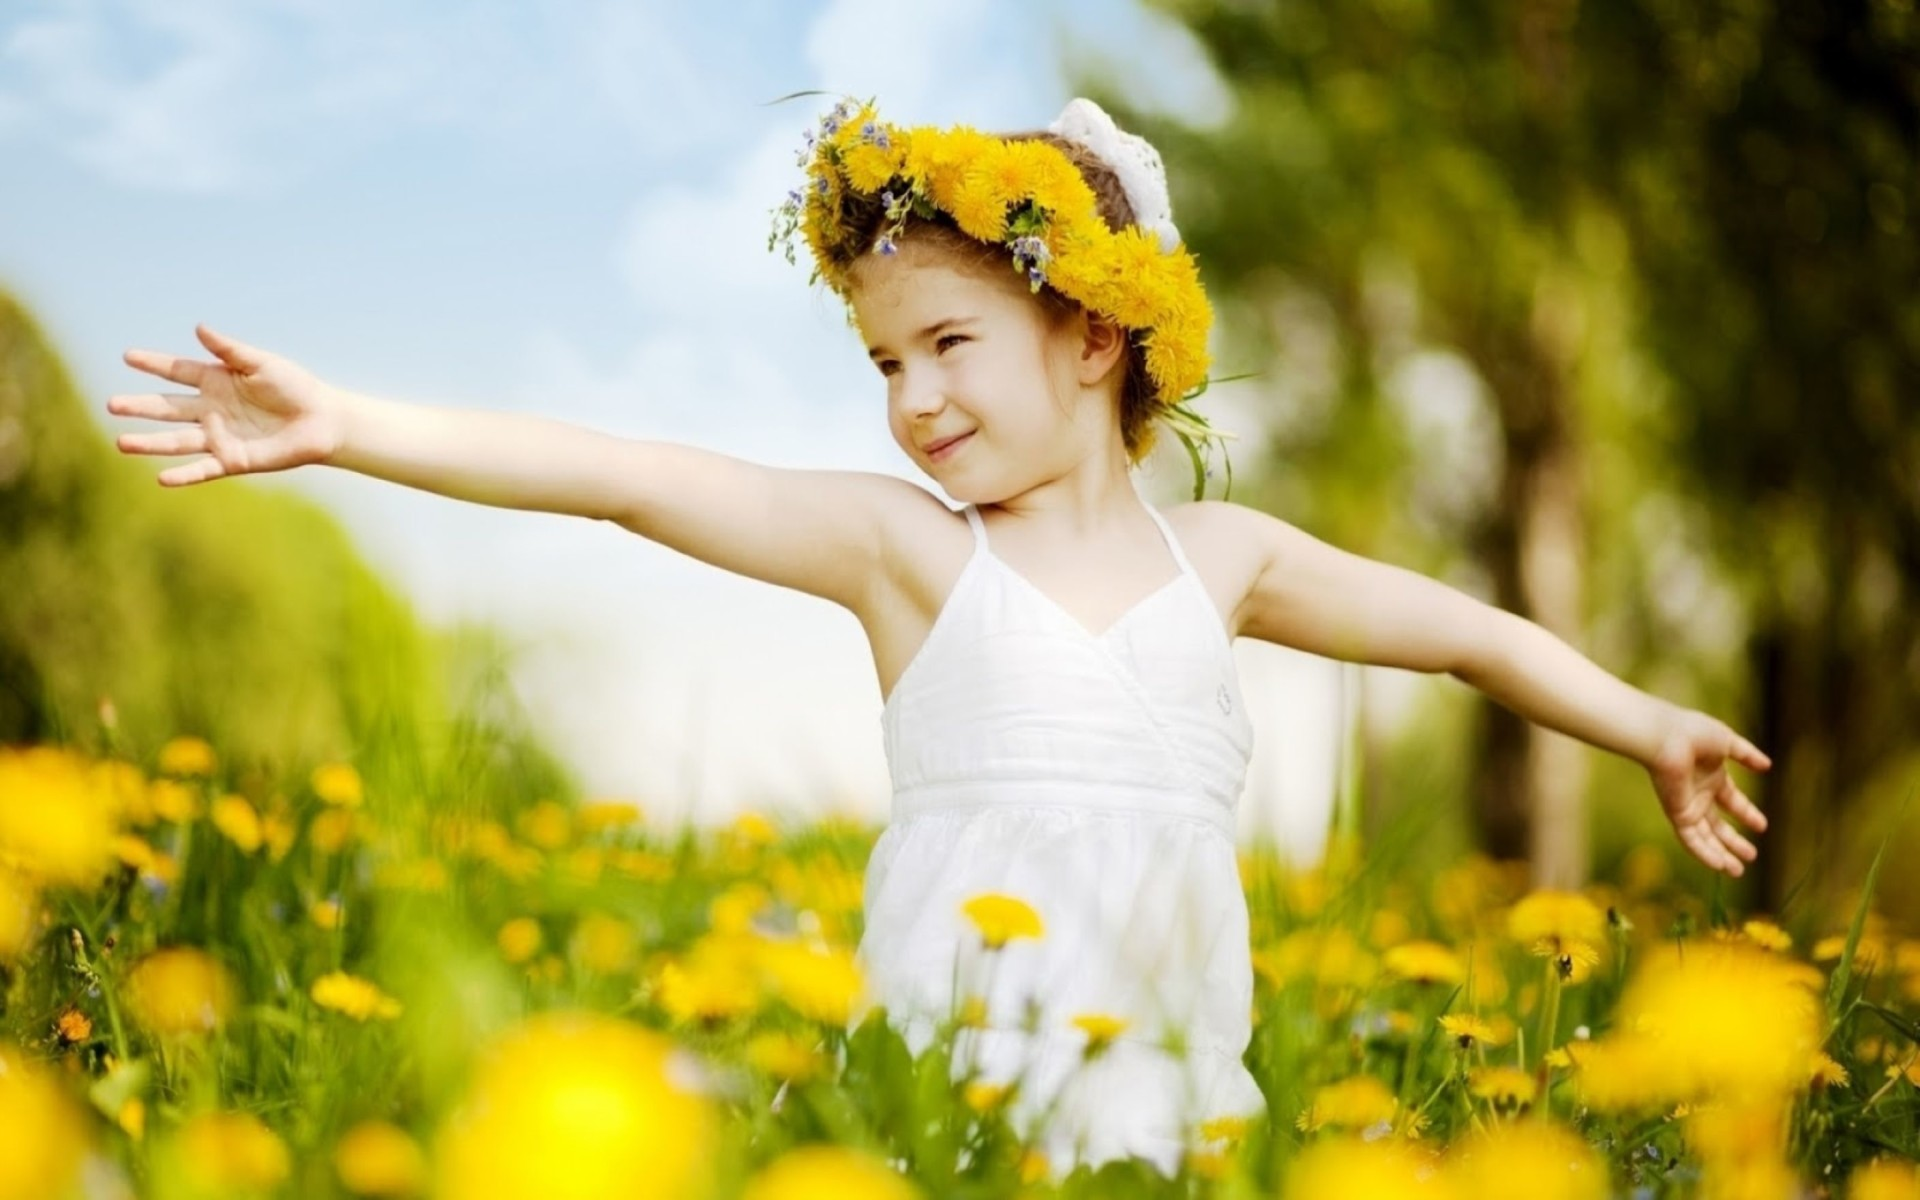 Girl Dancing In Field Of Yellow Flowers Wallpaper